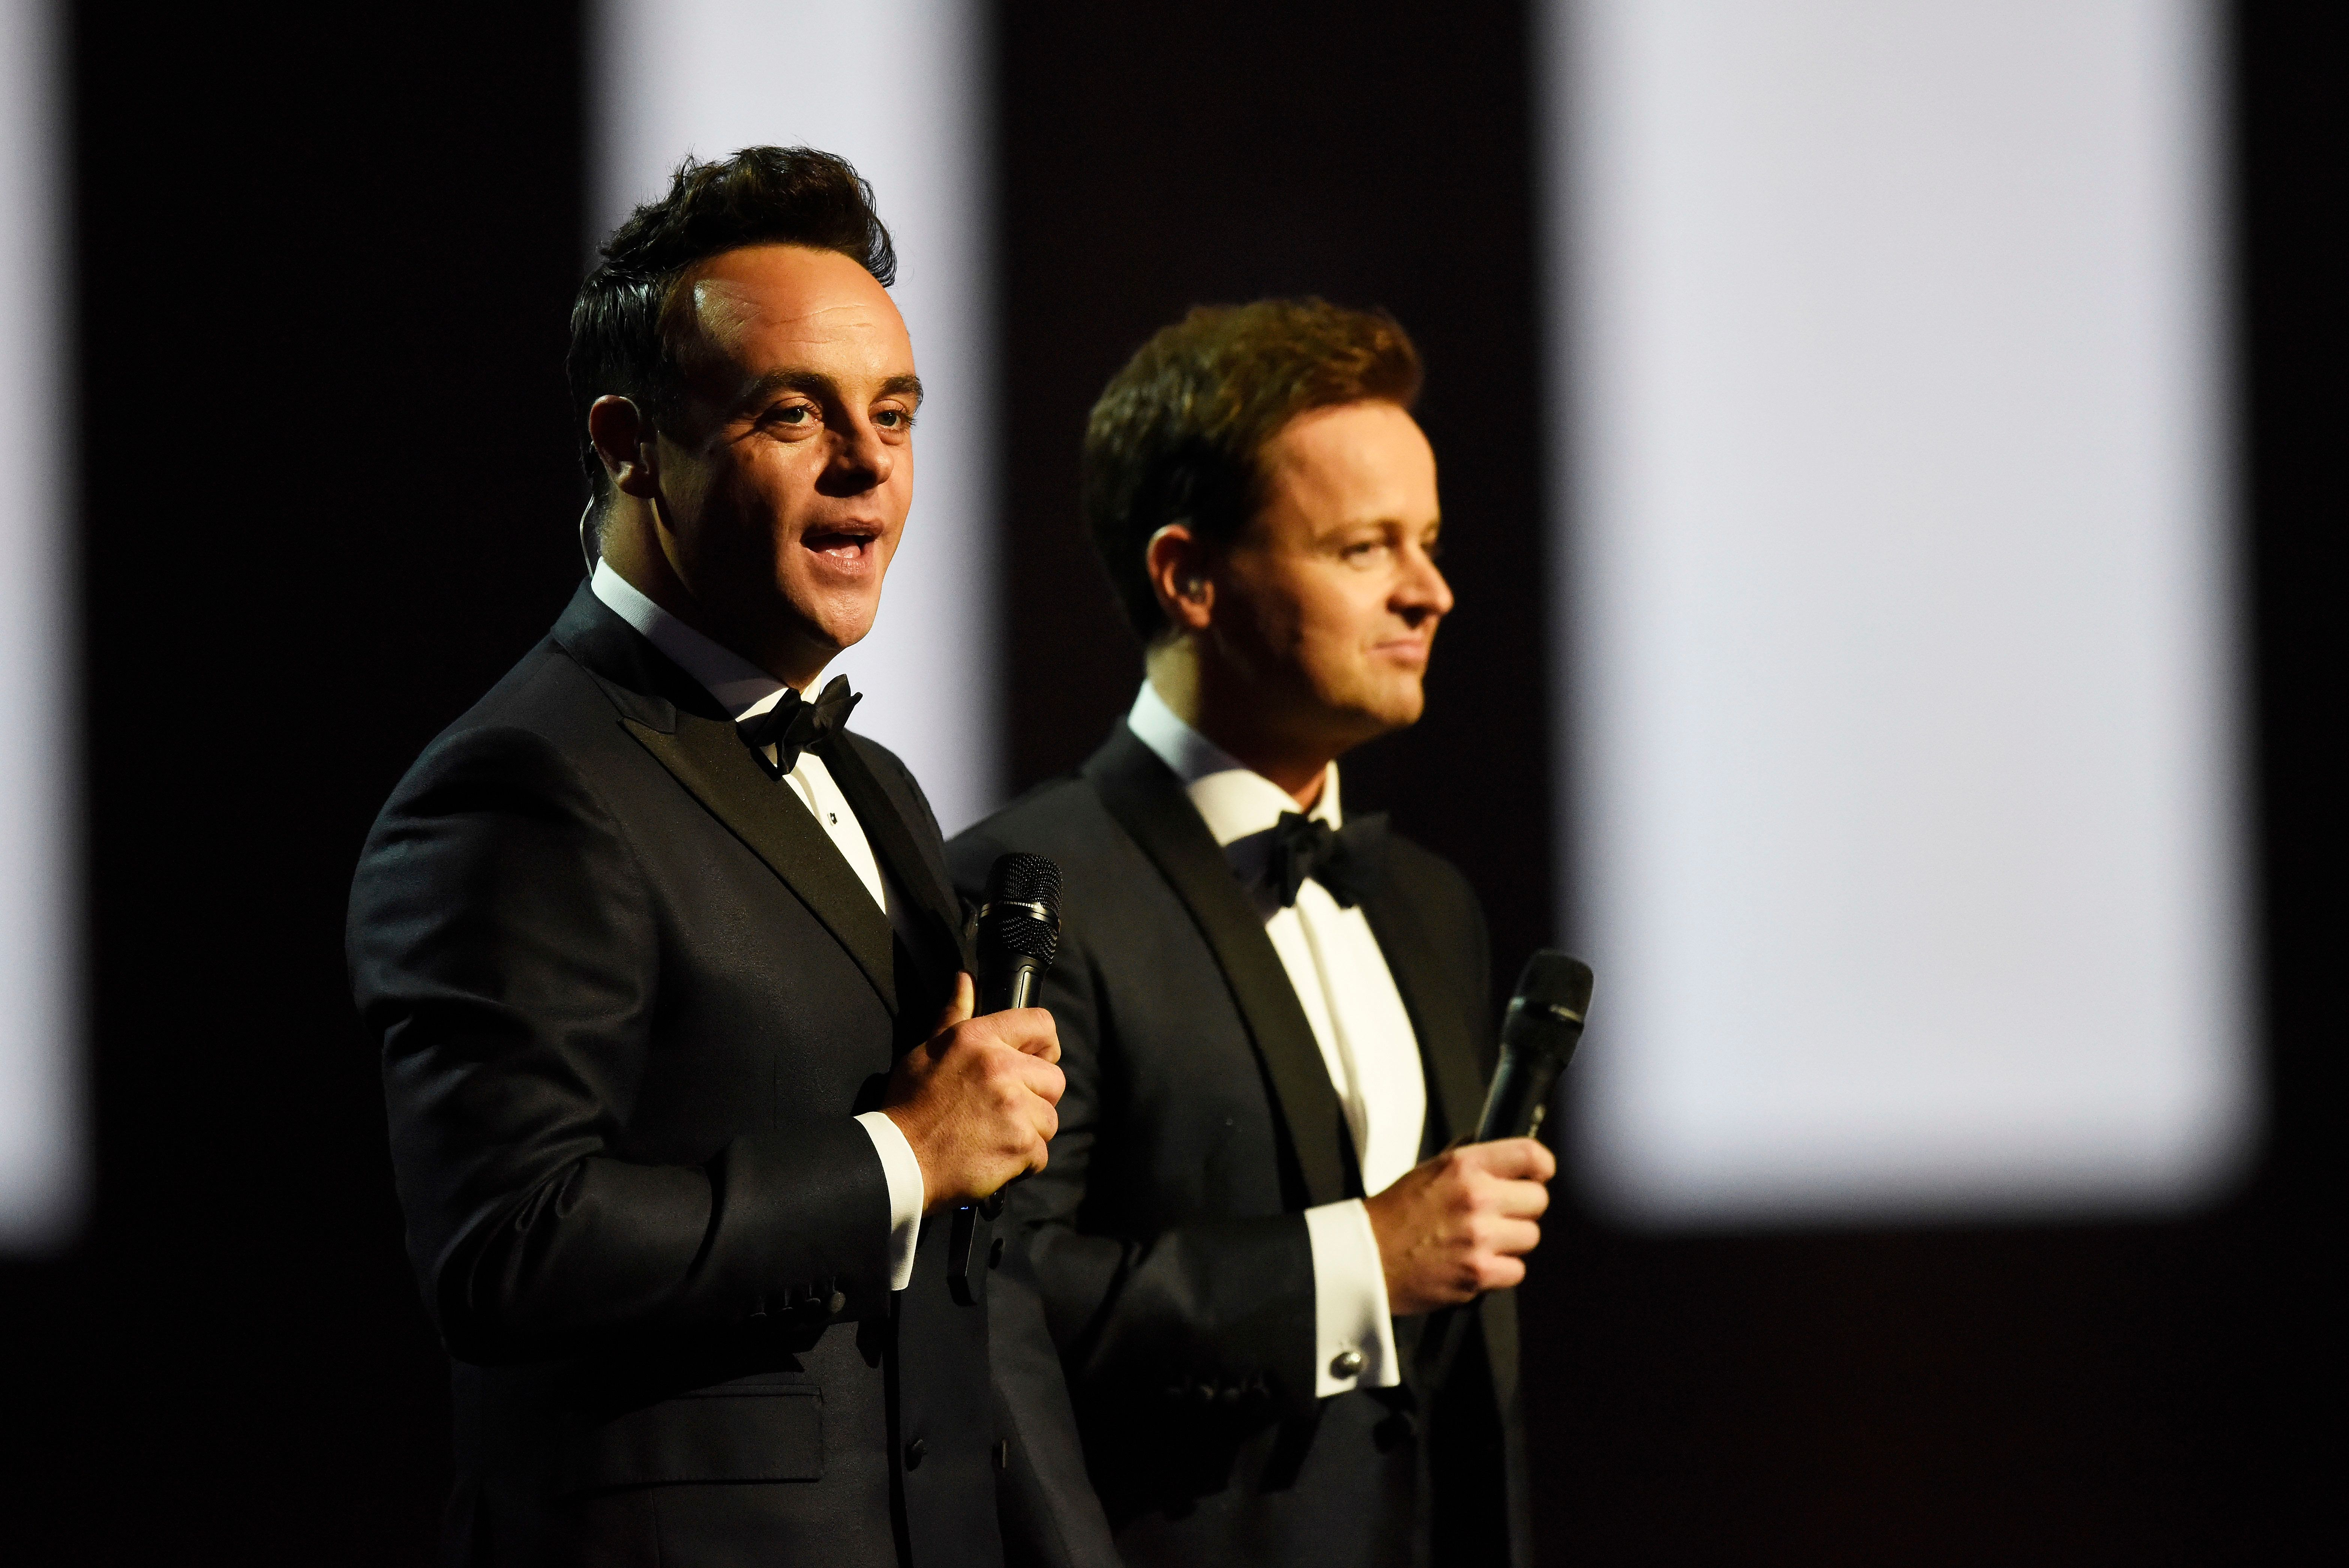 Ant and Dec have hosted the show for the past two